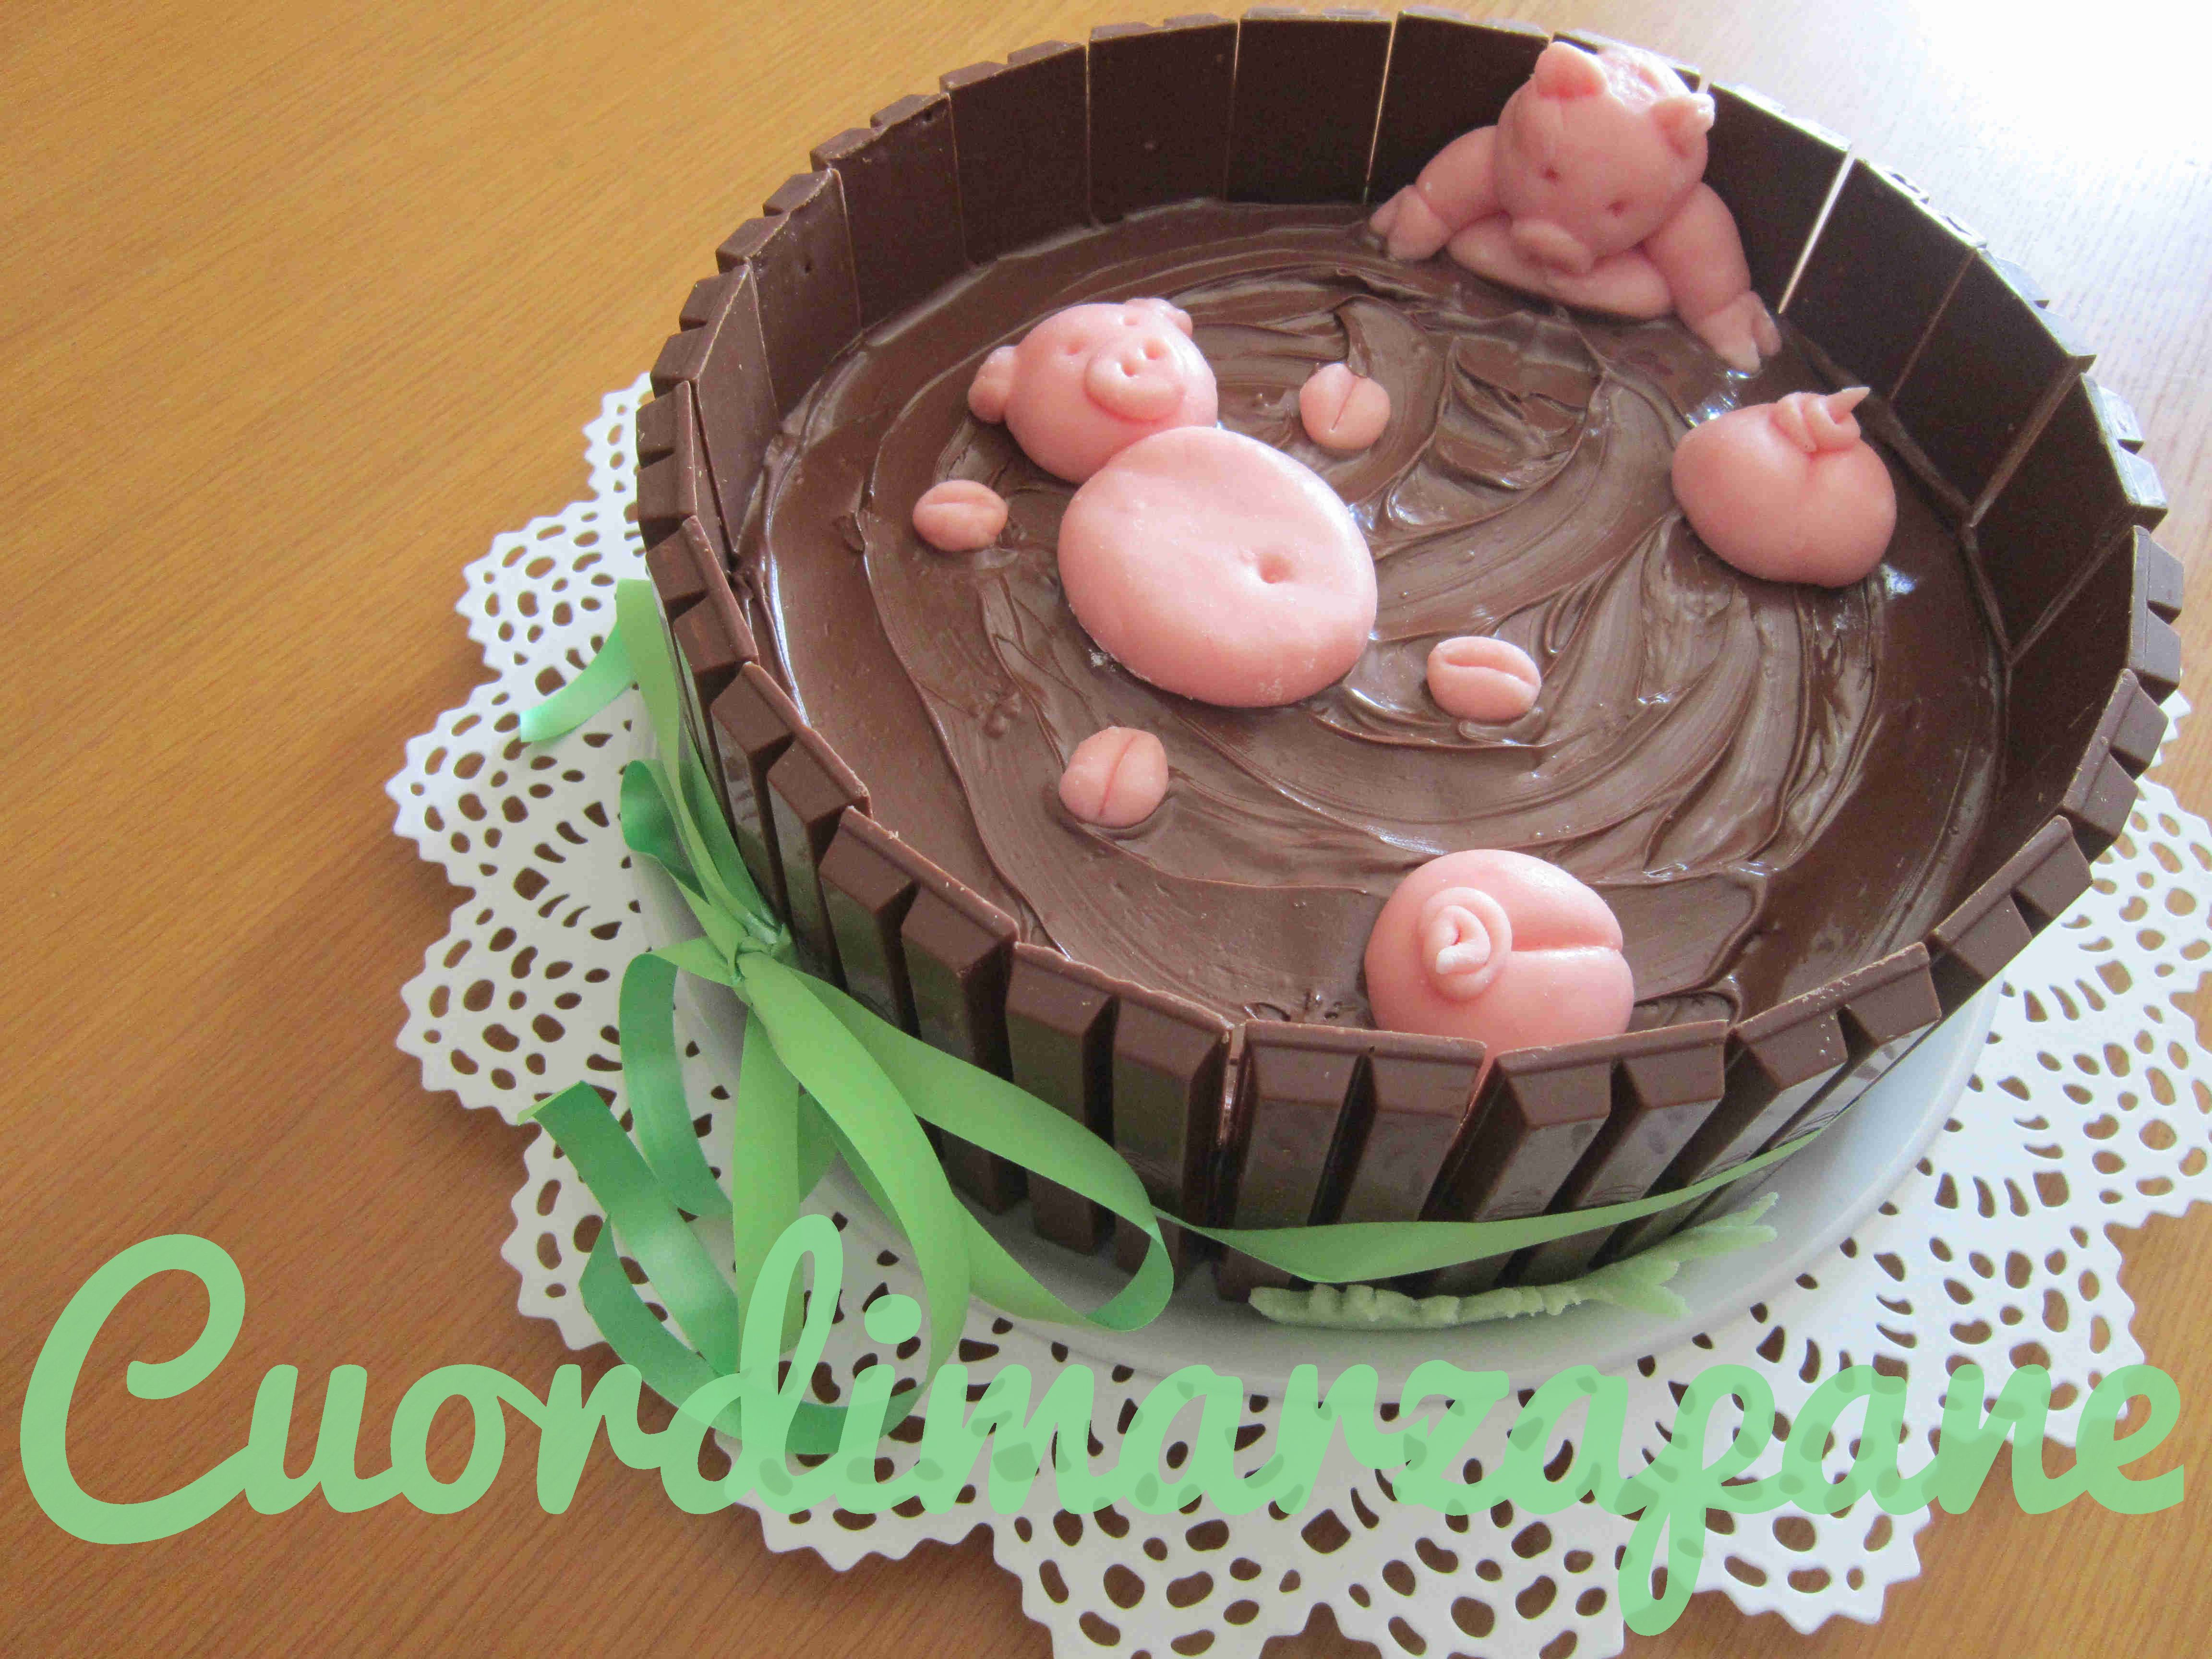 http://cuordimarzapane.altervista.org/wp-content/uploads/2014/05/Pigs-in-mud-cake-23.jpg